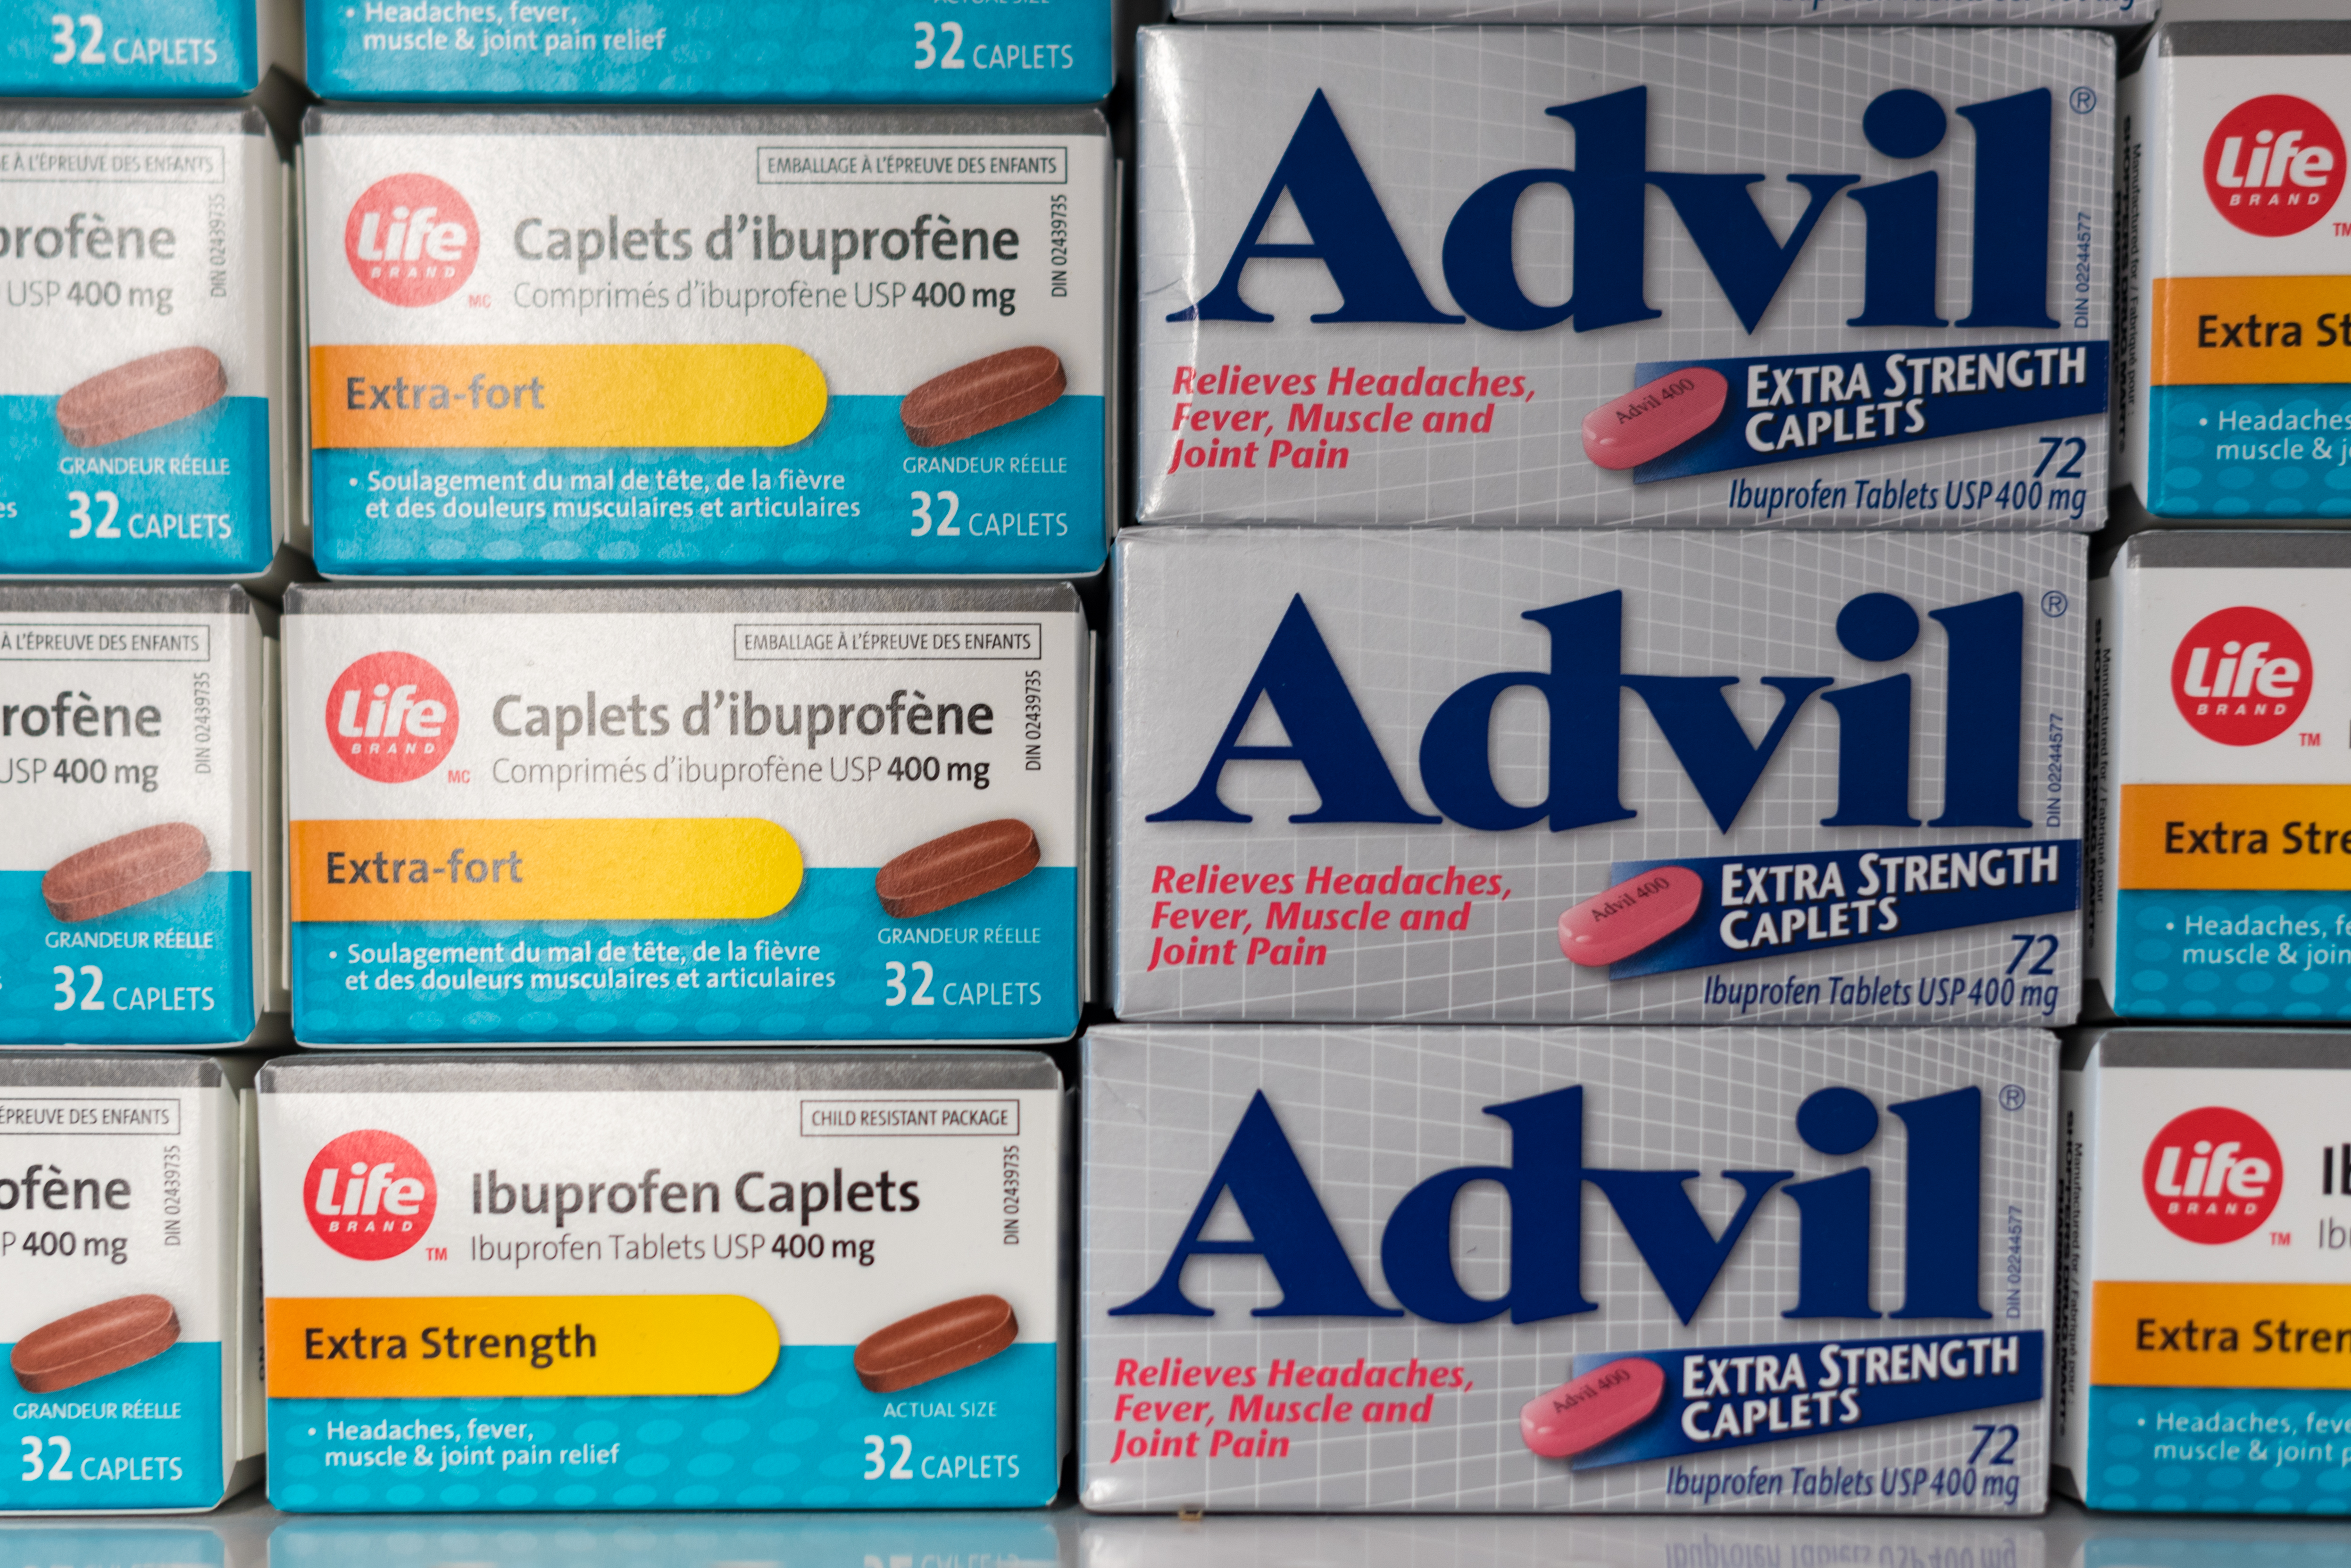 Advil and Life companies' medicine boxes on display at...